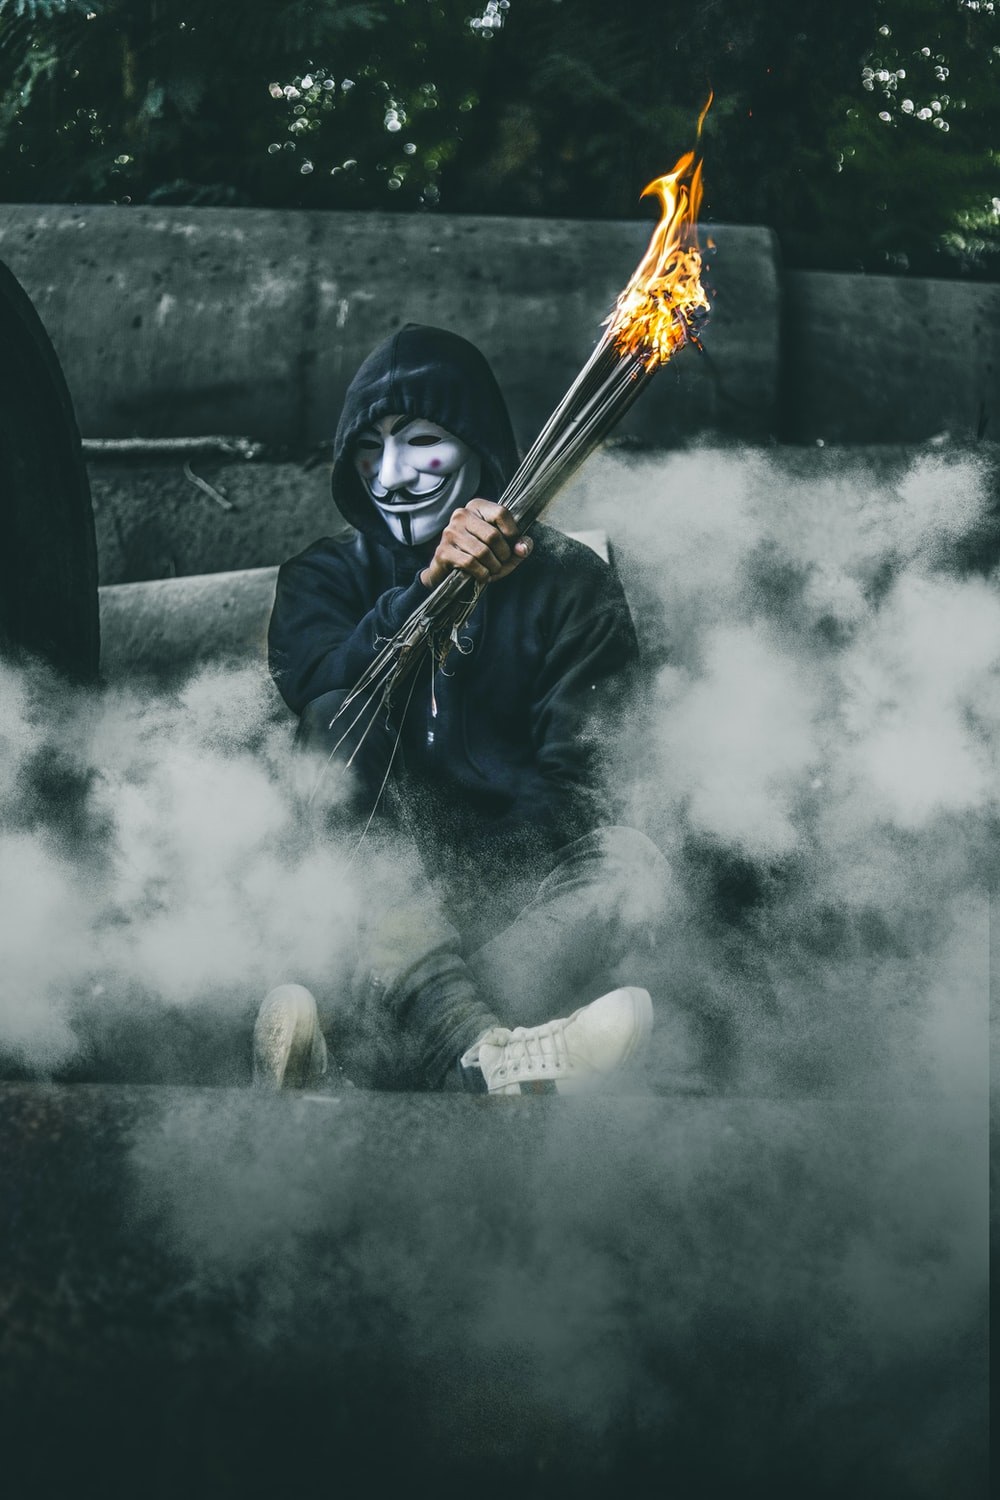 person wearing guy Fawkes's mask while holding torch